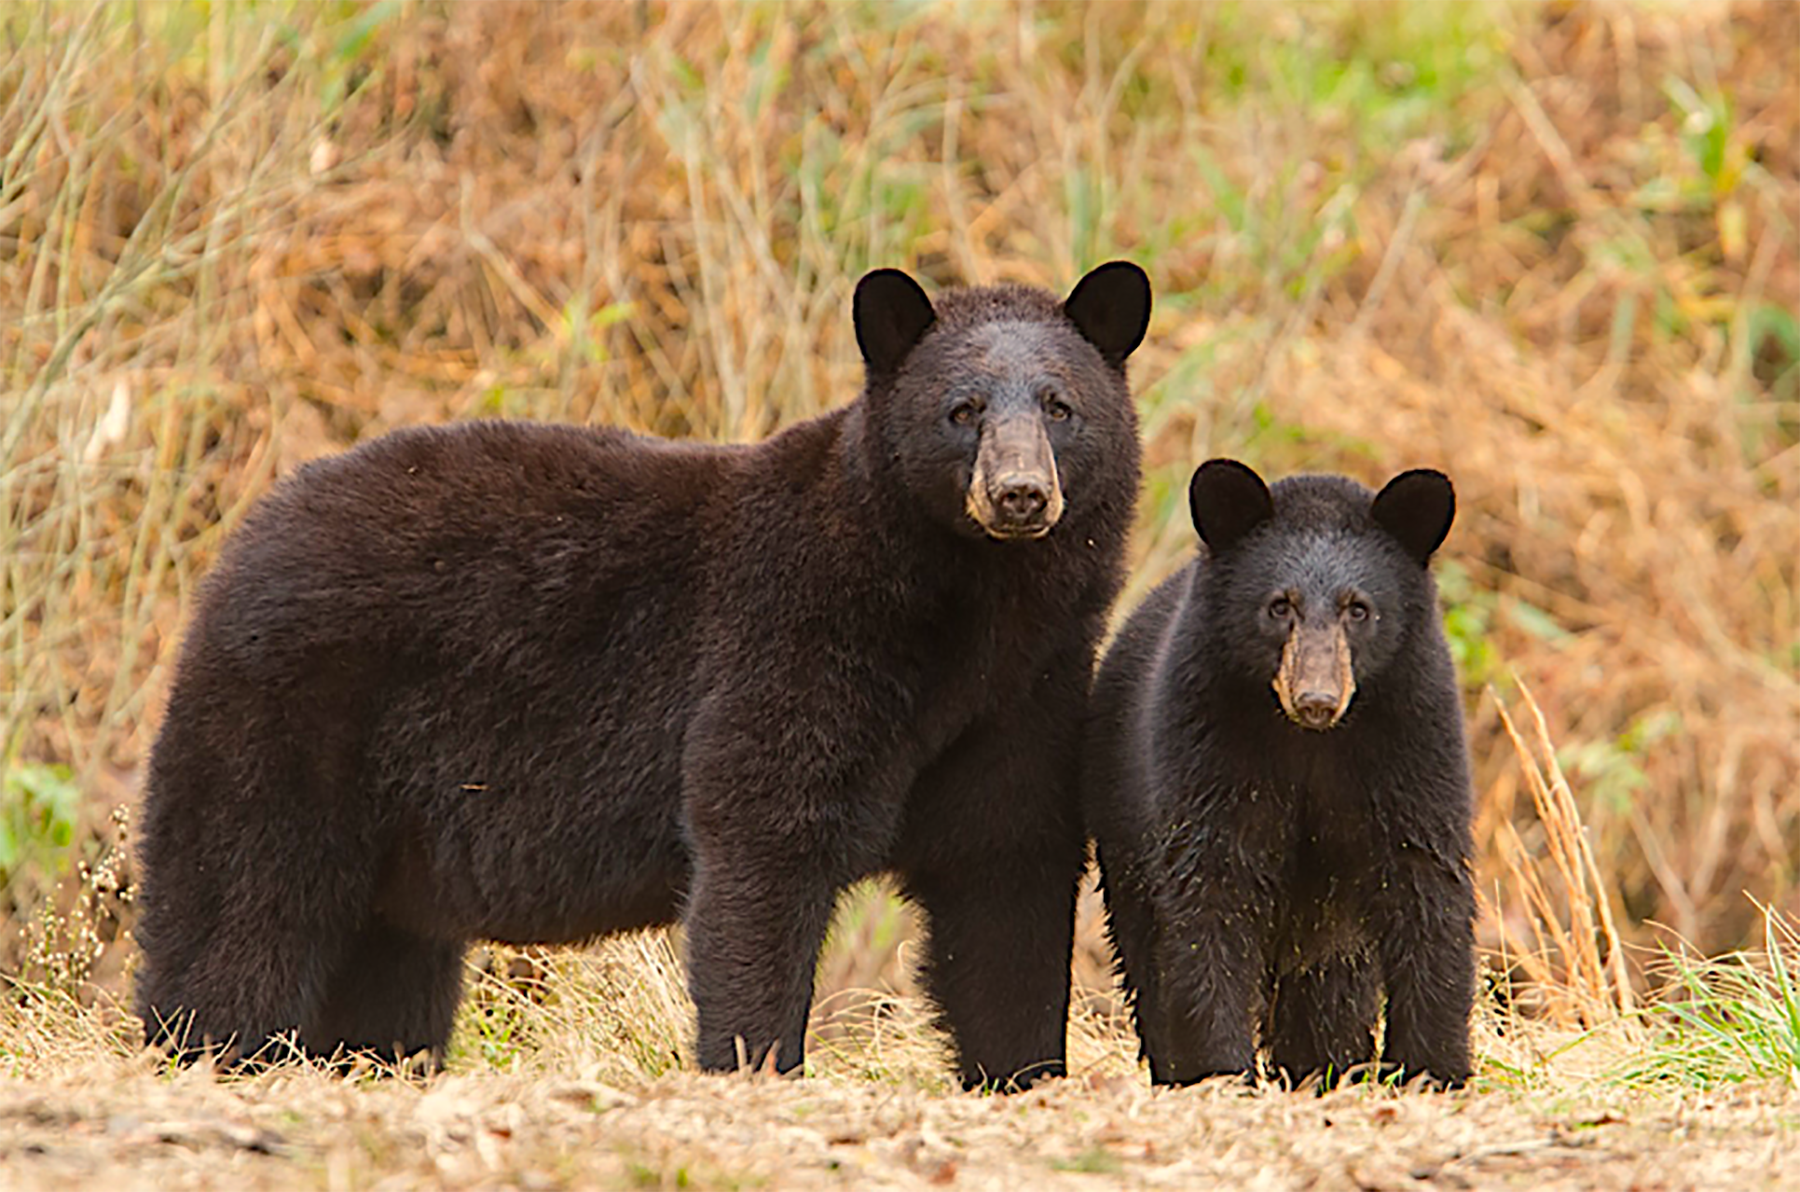 Black bears are common sights across the OAP region. Photo by Mike Dunn.